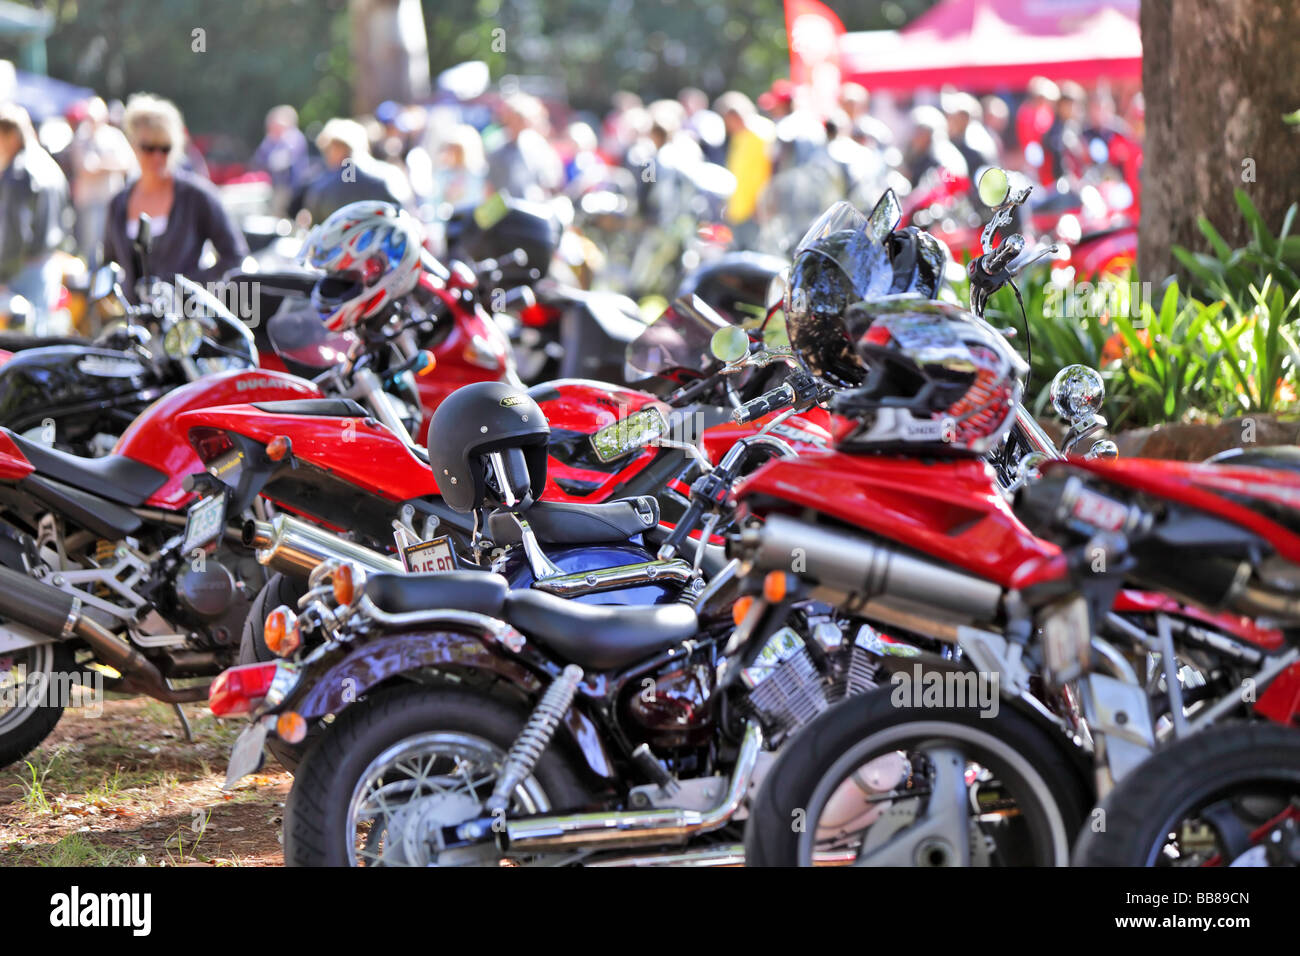 Ducati motorcycle club meets to display their bikes - Stock Image